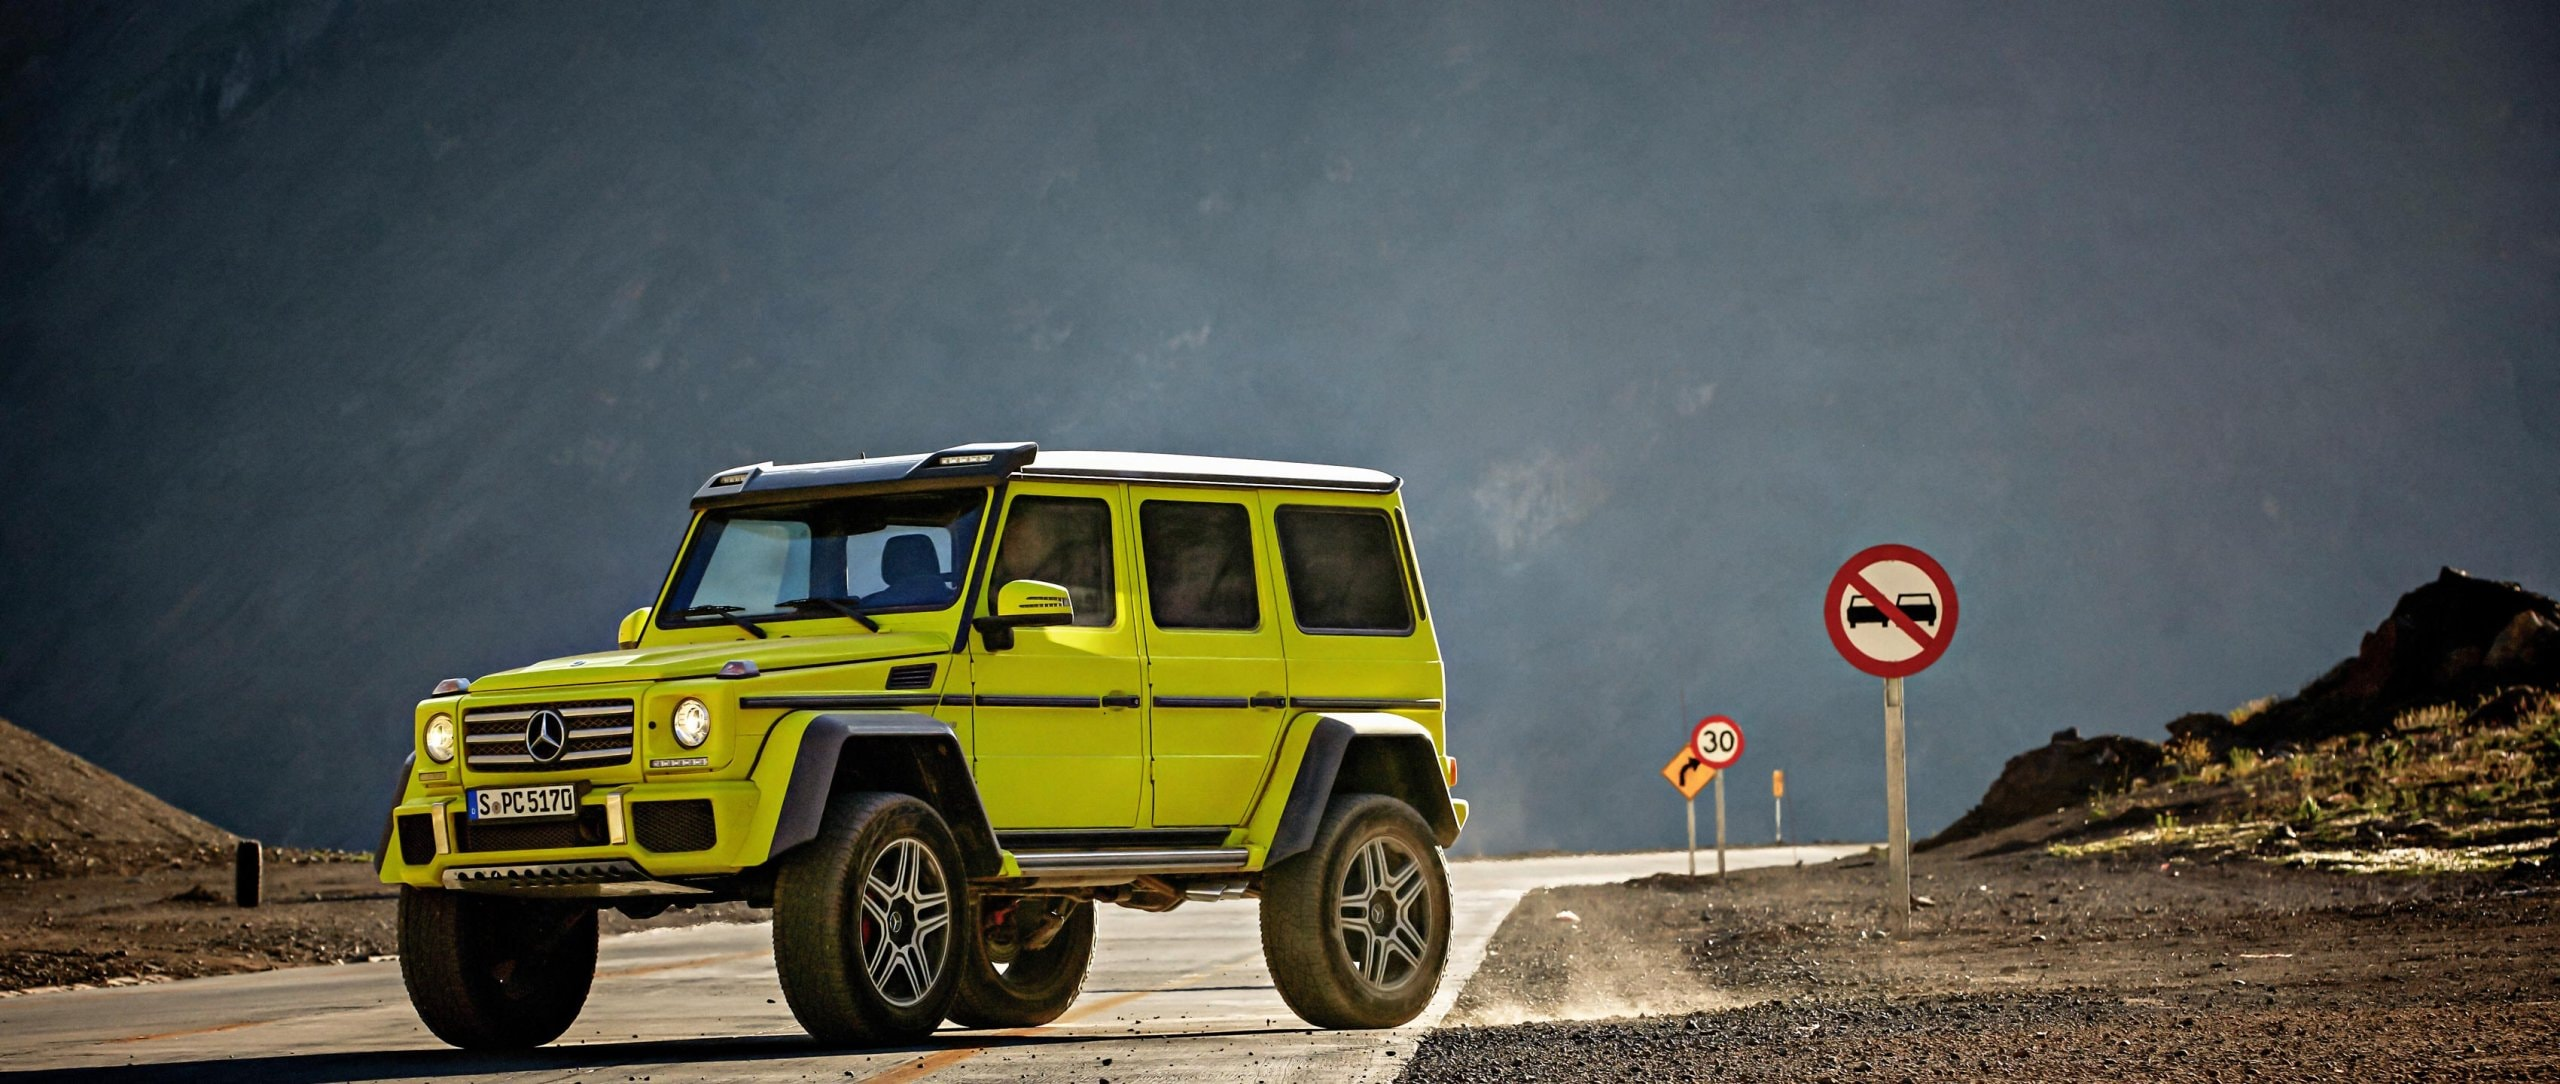 Fascination of the Mercedes-Benz G-Class.